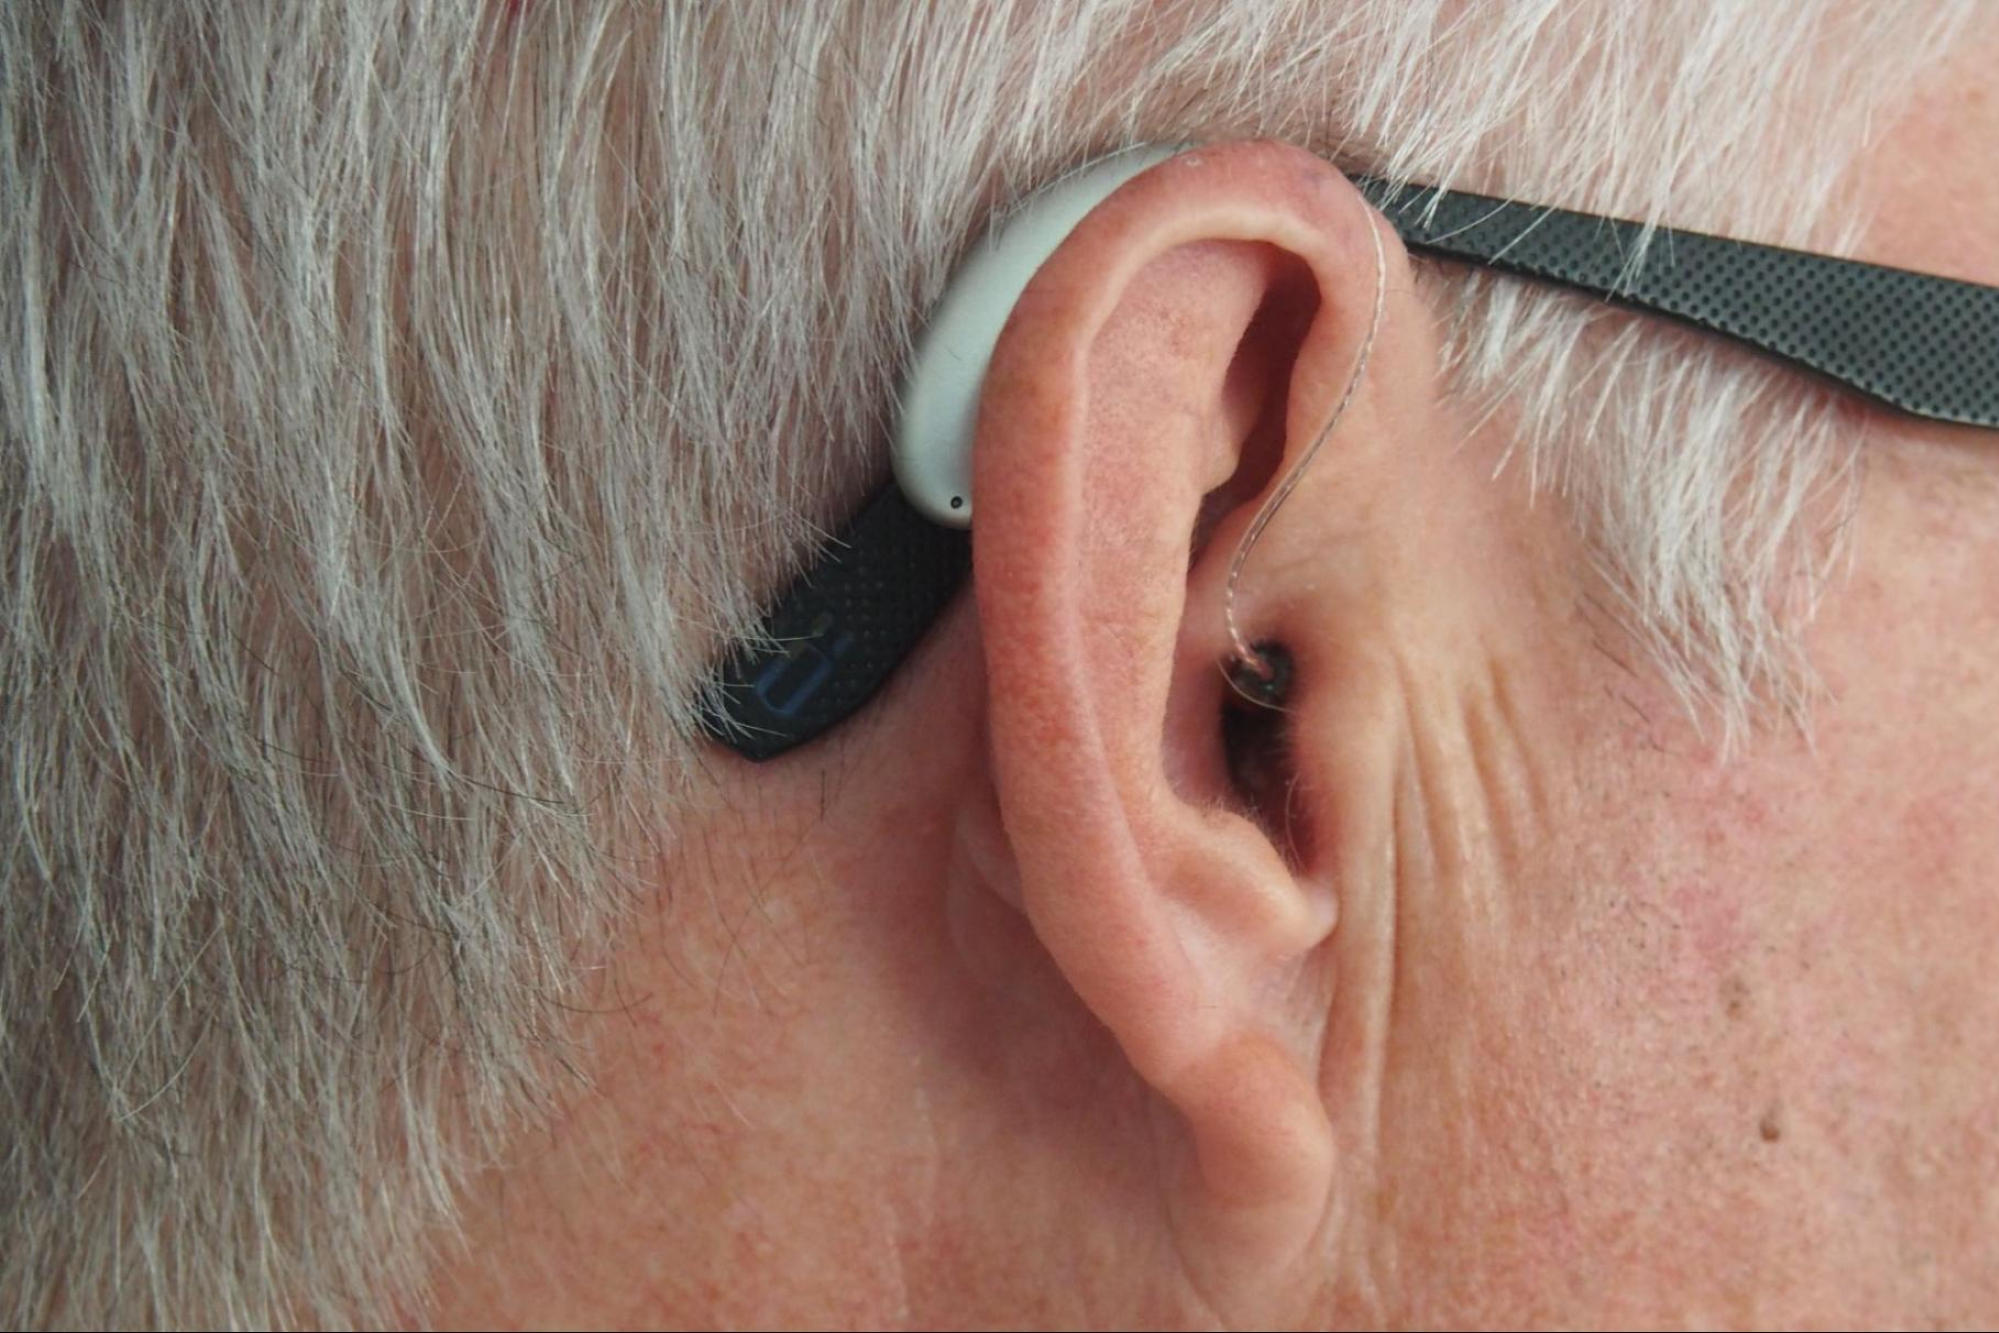 I hate my hearing aids! what can i do?